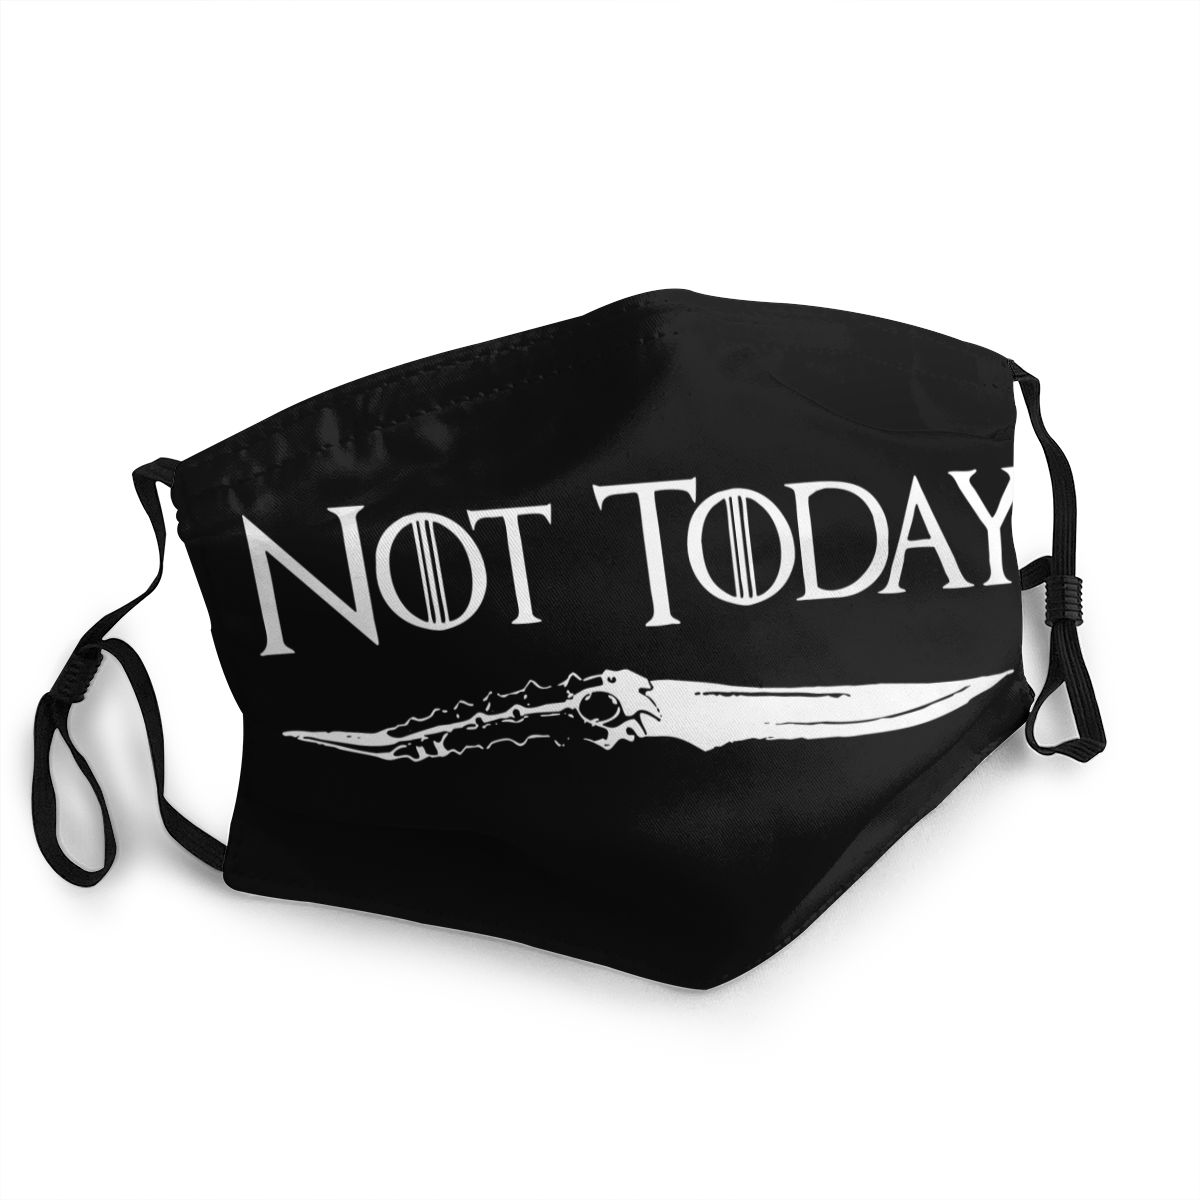 Not Today Arya Stark Adult Non-Disposable Mouth Face Mask Game Of Thrones Anti Haze Dustproof Protection Cover Respirator